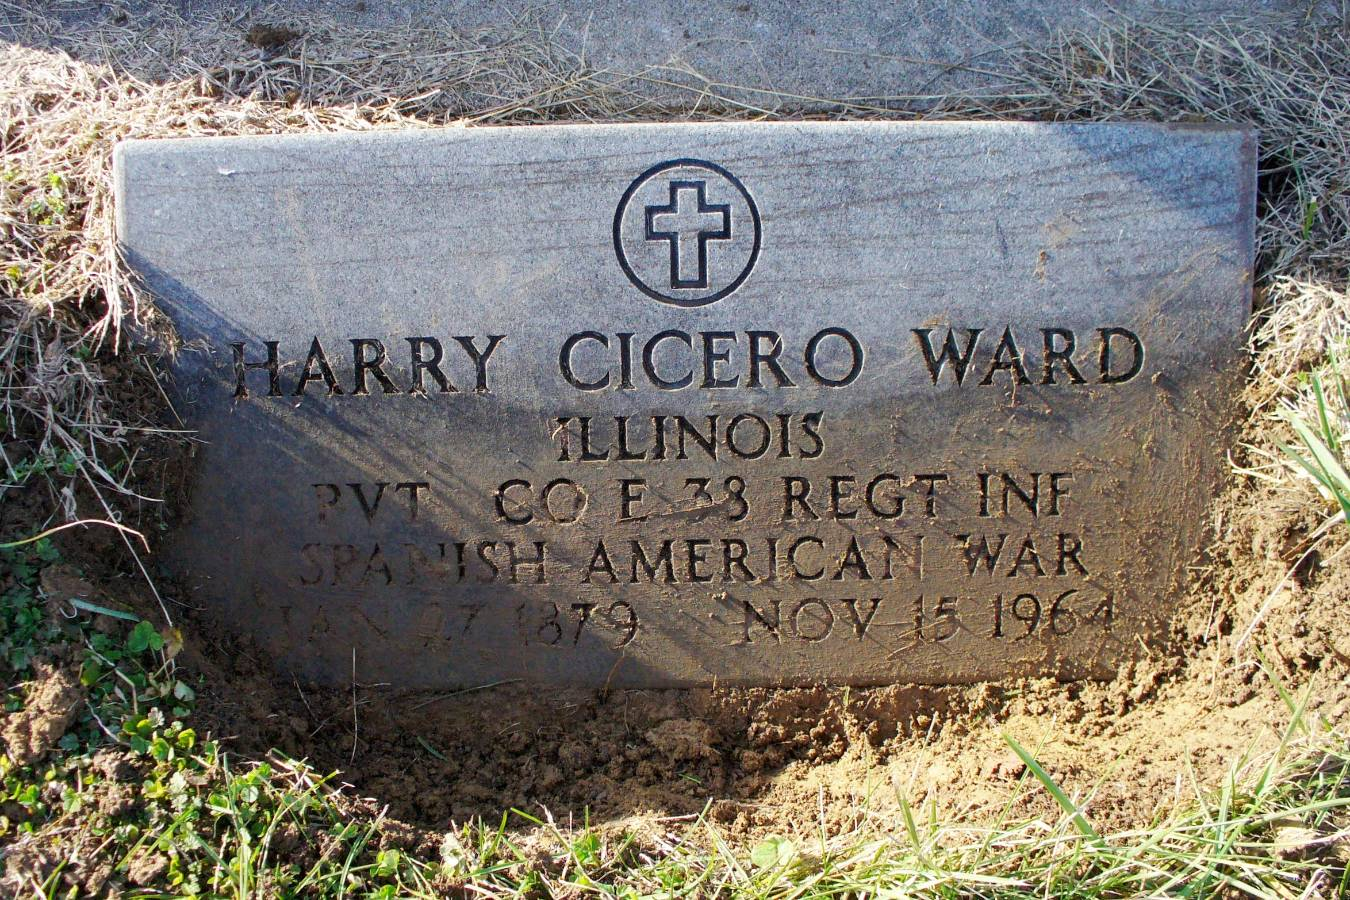 H C Ward veterans memorial.jpg